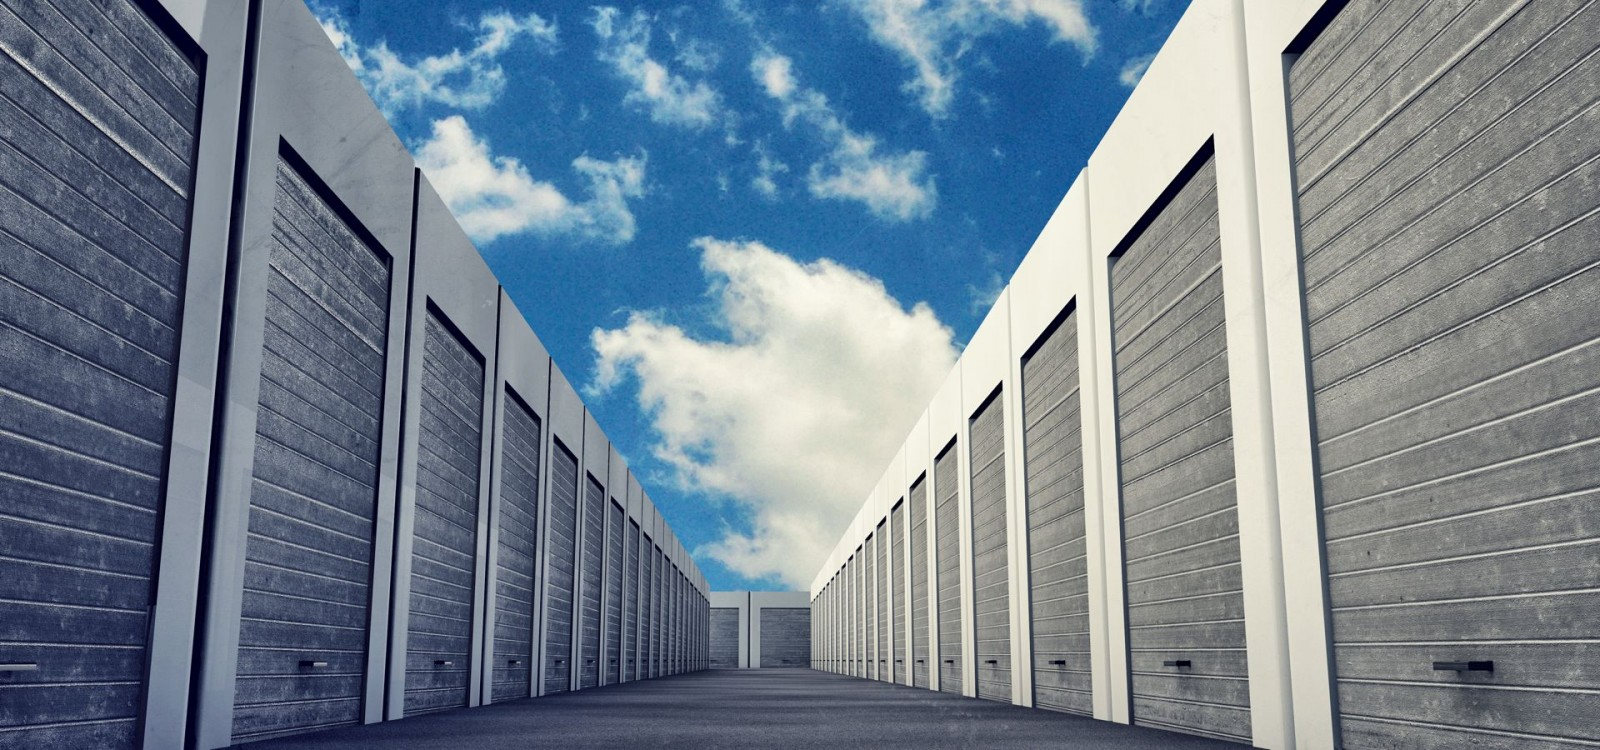 Are You Looking At Self Storage In UT? – See why Self Storage is the highest performing real estate asset class and how you can participate today!